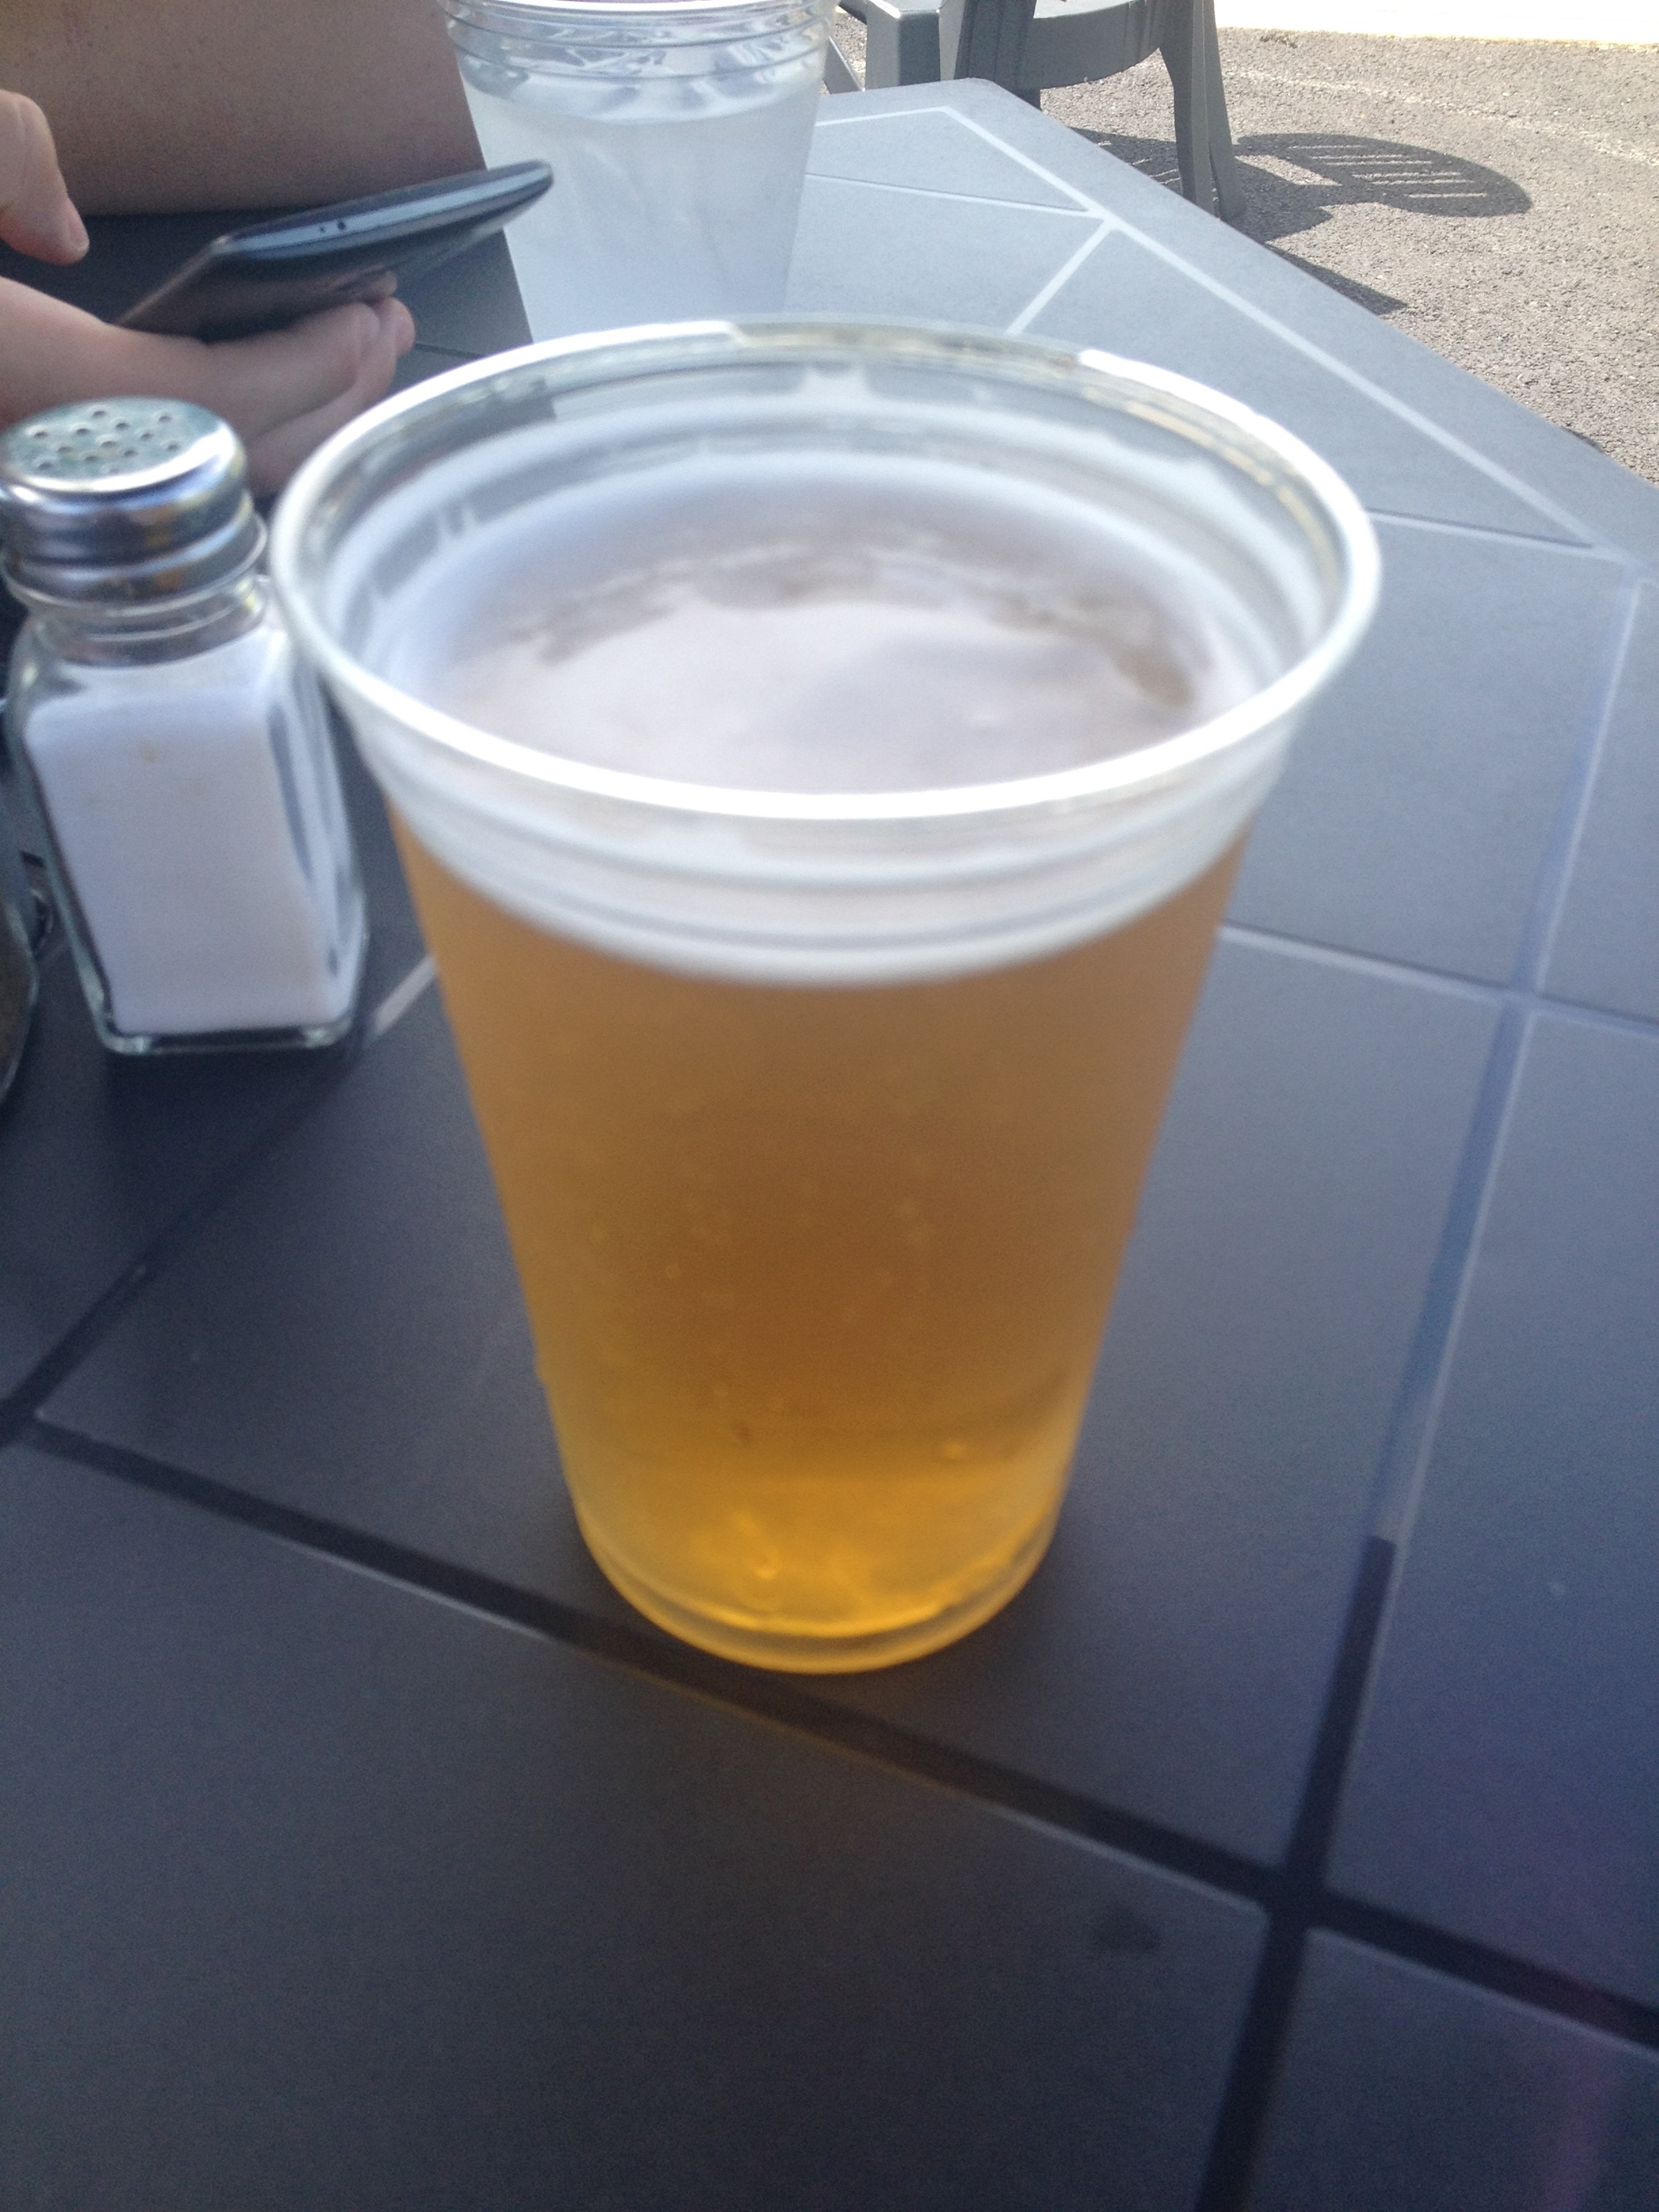 stonewood hardwood flooring reviews of portside beer garden is so much more than a beer tent video throughout check it out if you ever have the chance since it is outside its best to check the face book group for times